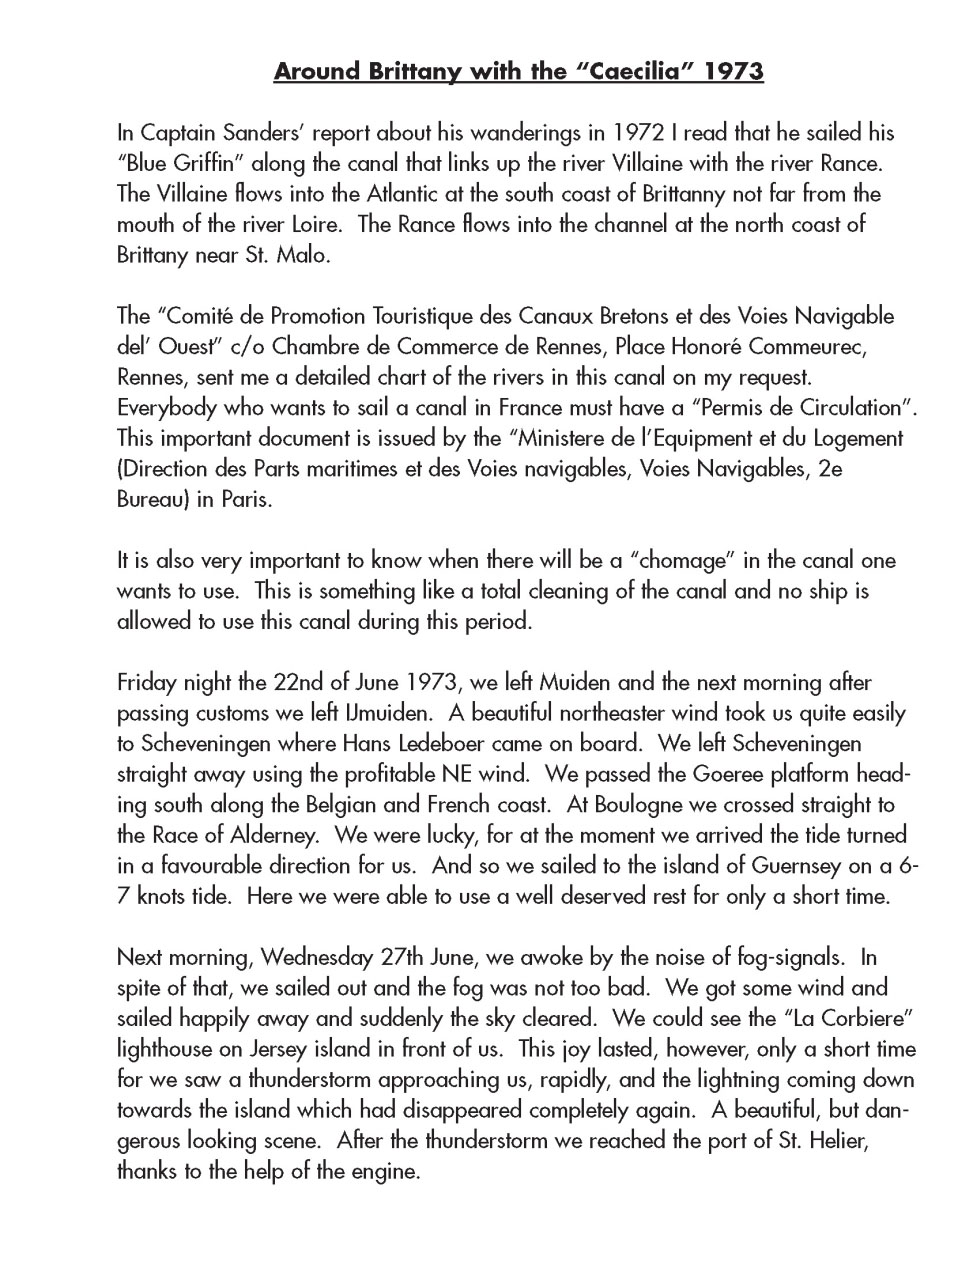 Narrative1973_Page_1